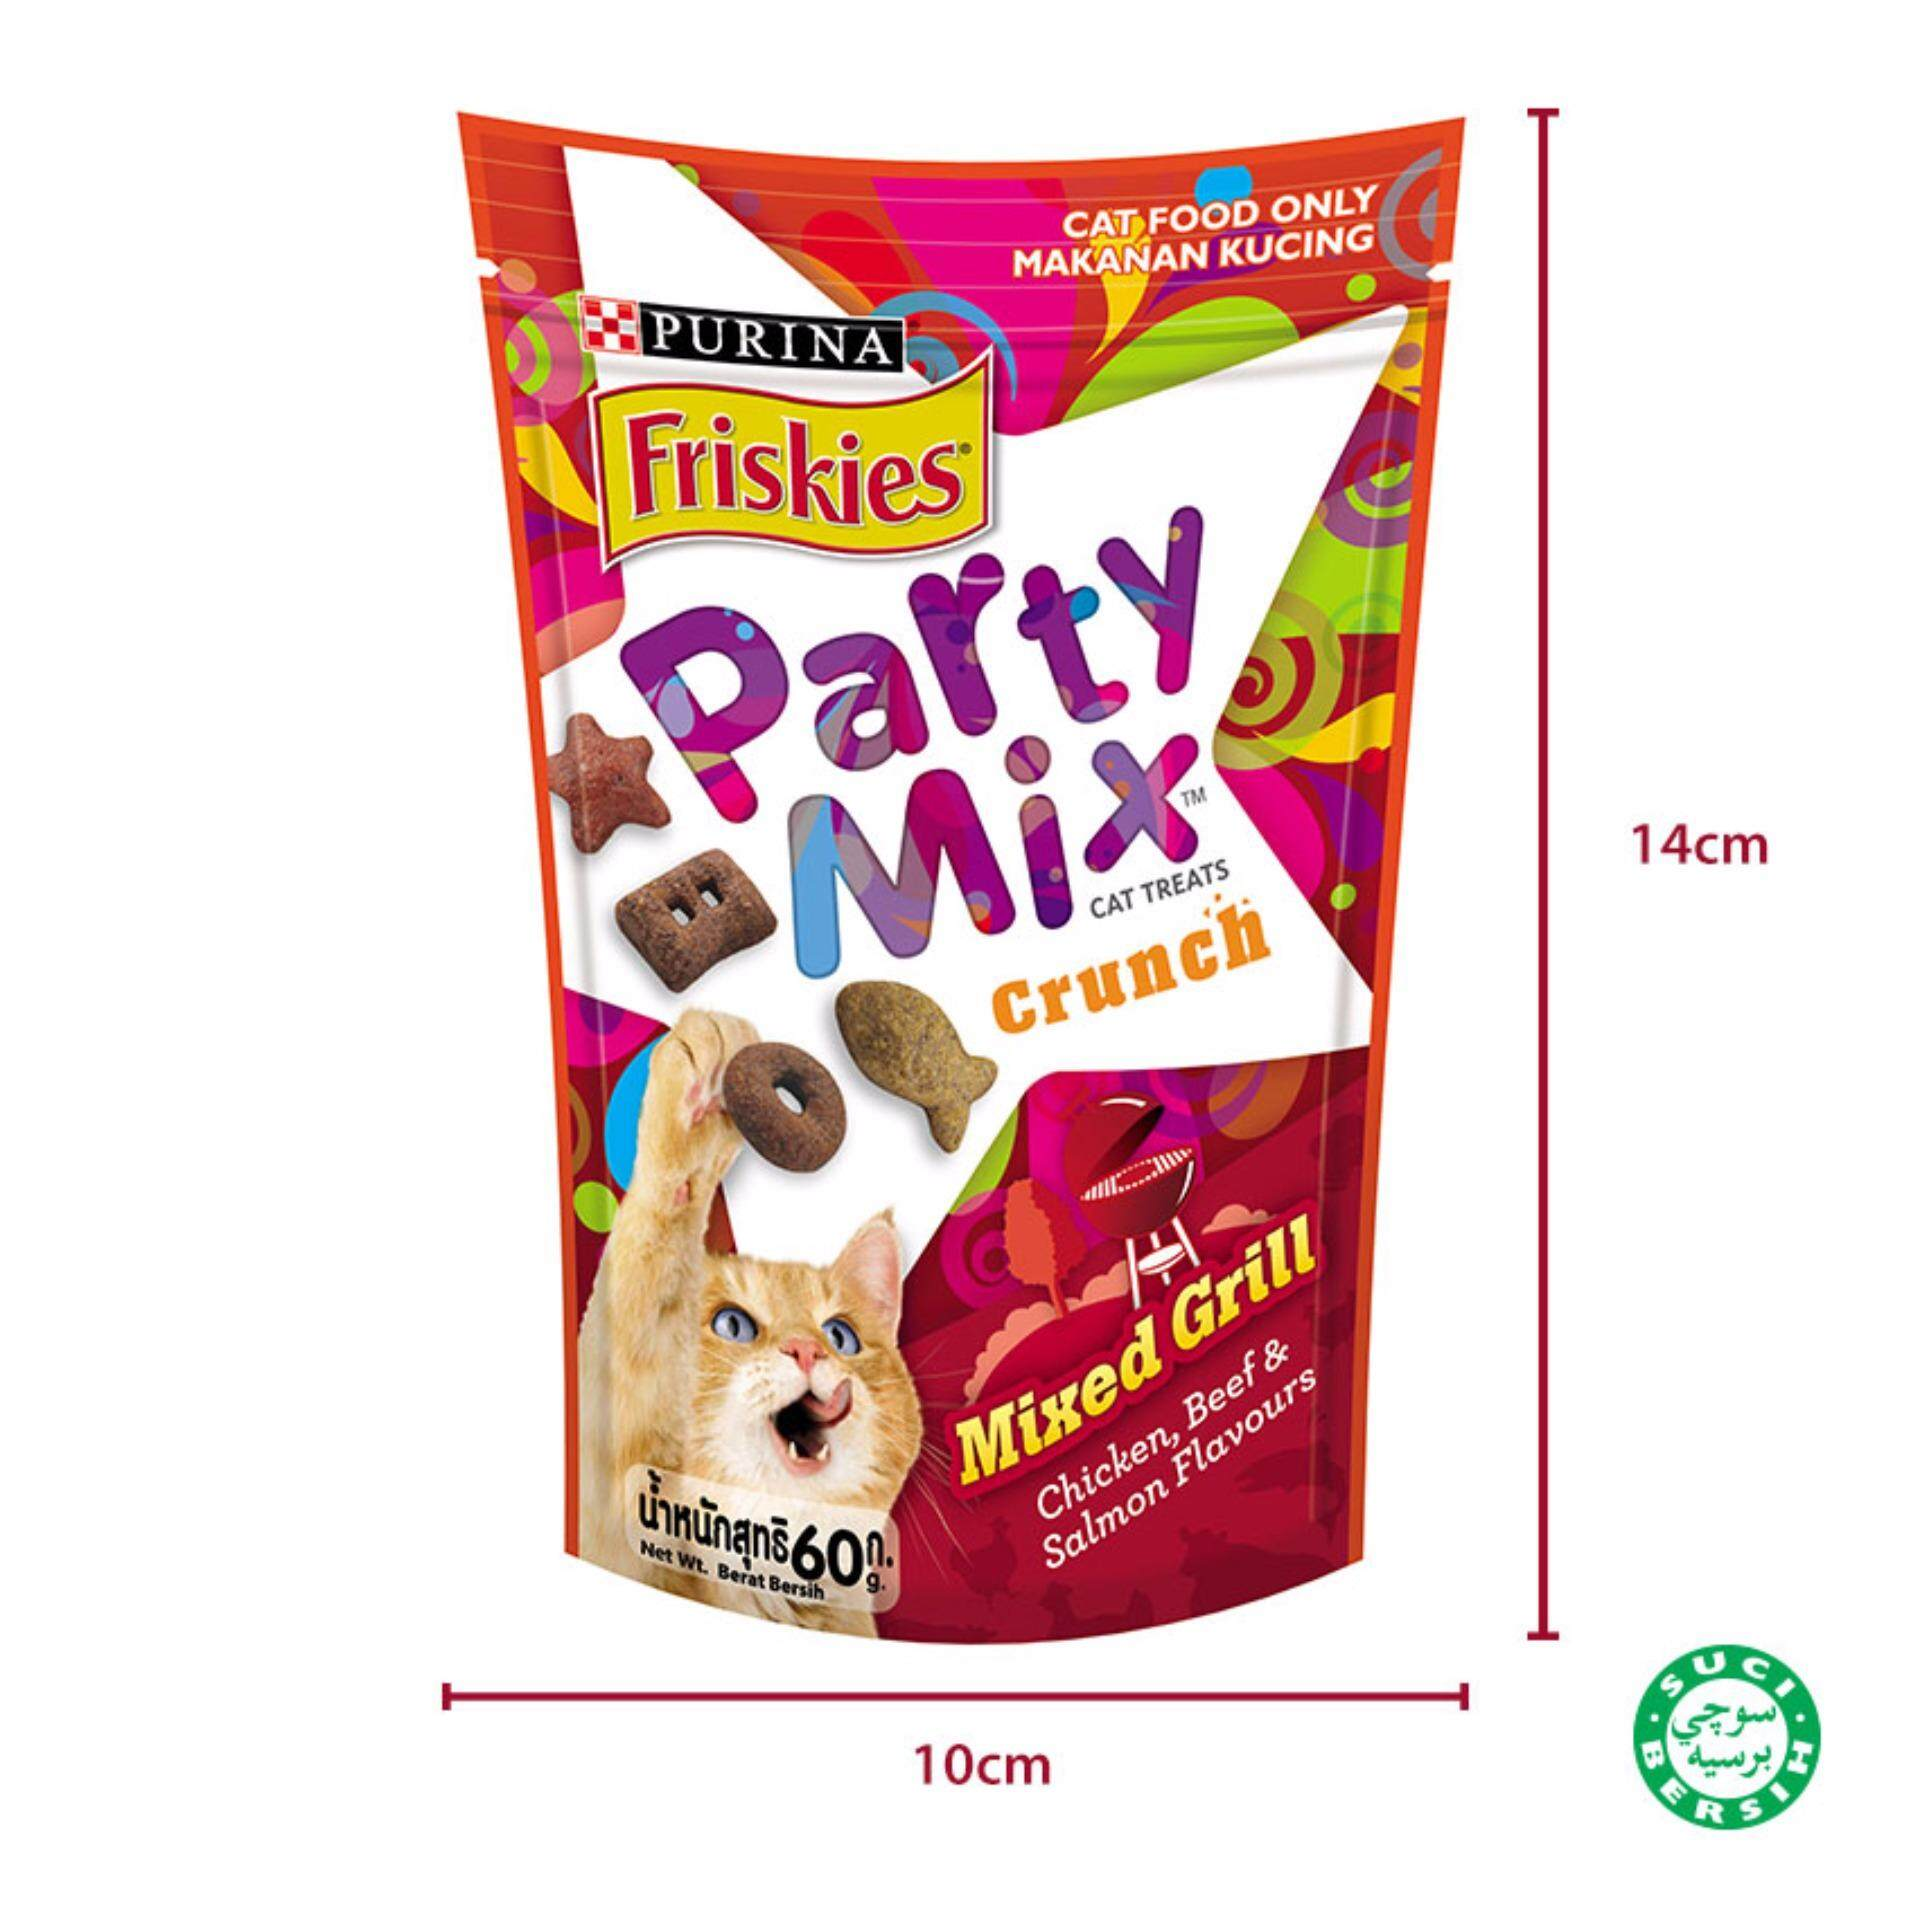 Friskies Party Mix Mixed Grill Crunch: Chicken Beef & Salmon Flavours Dry Cat Treats (1 x 60g)